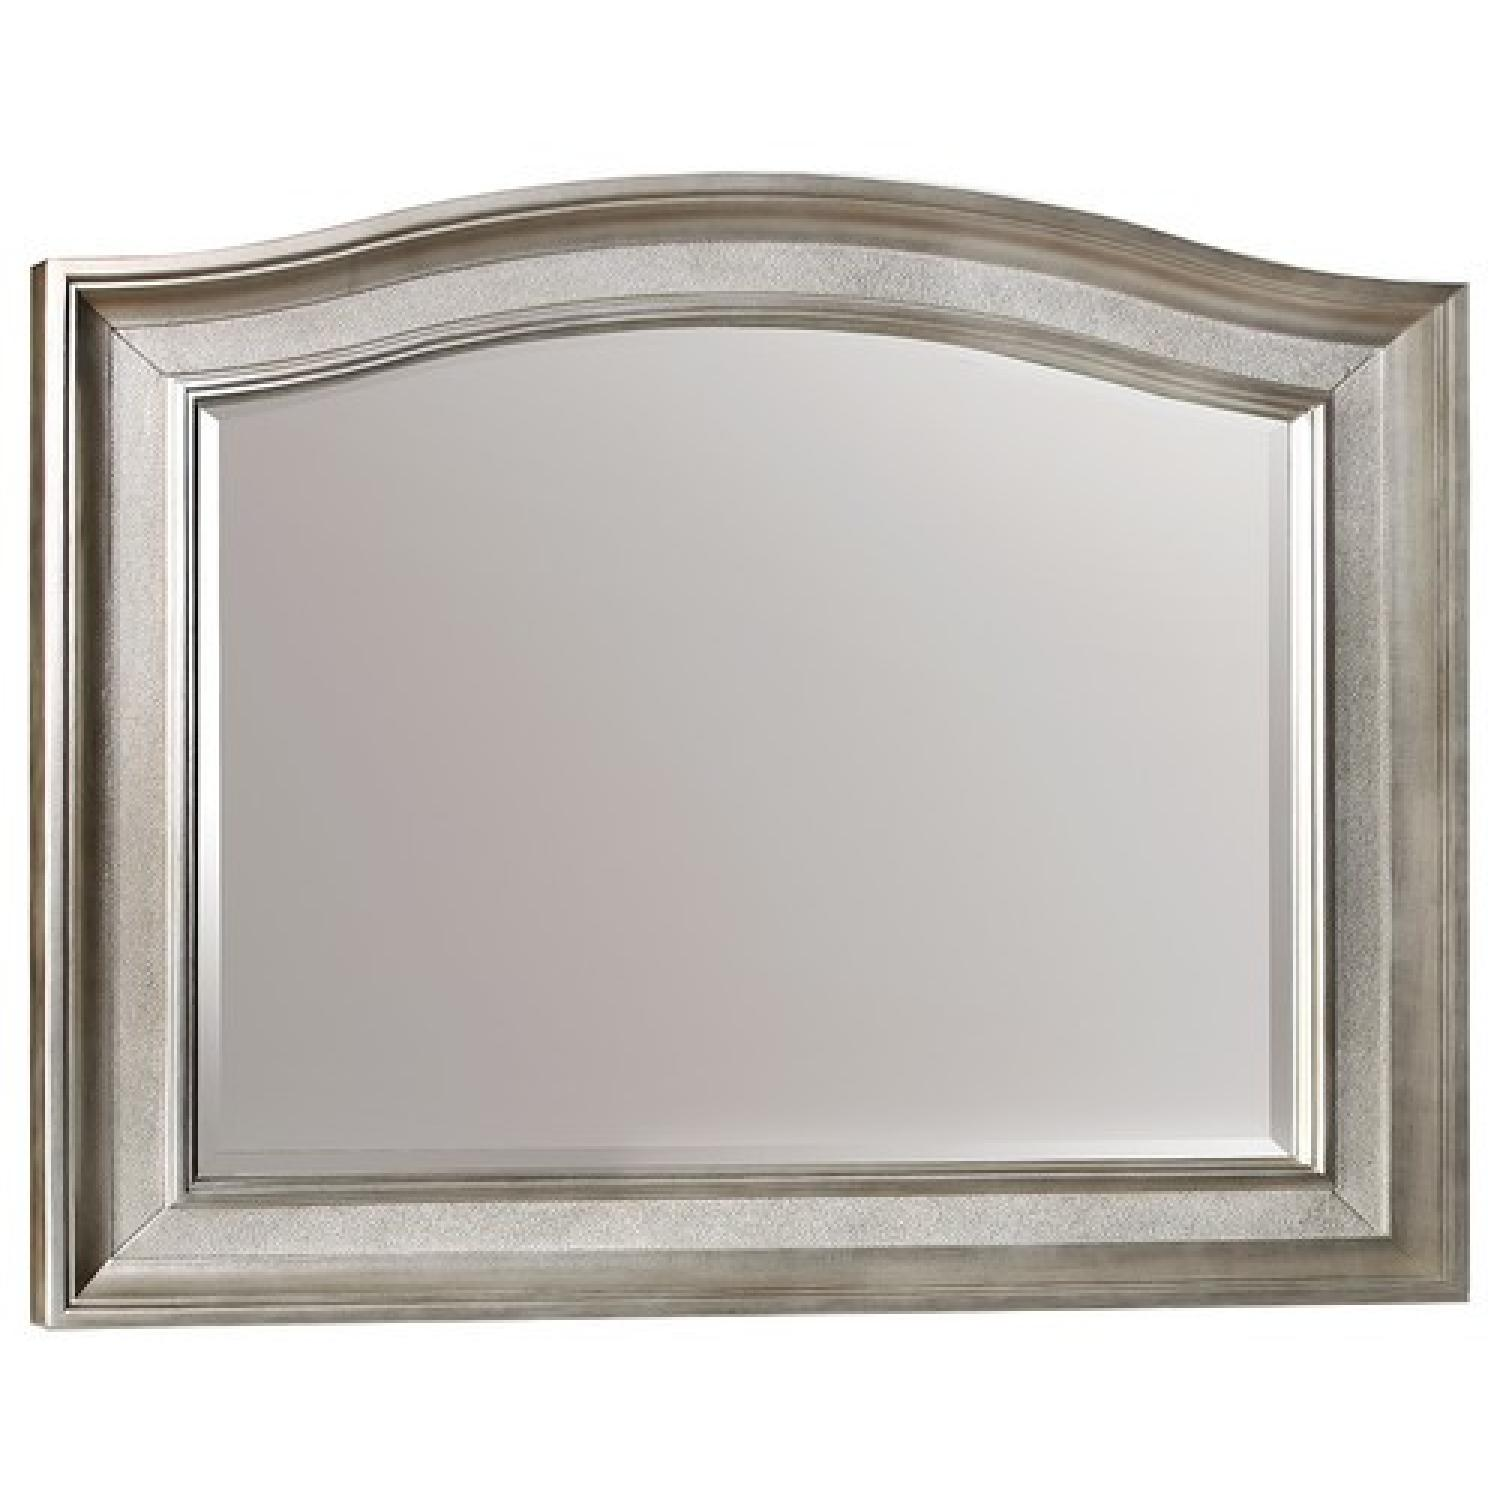 Hollywood Bling Game Mirror w/ Arched Top